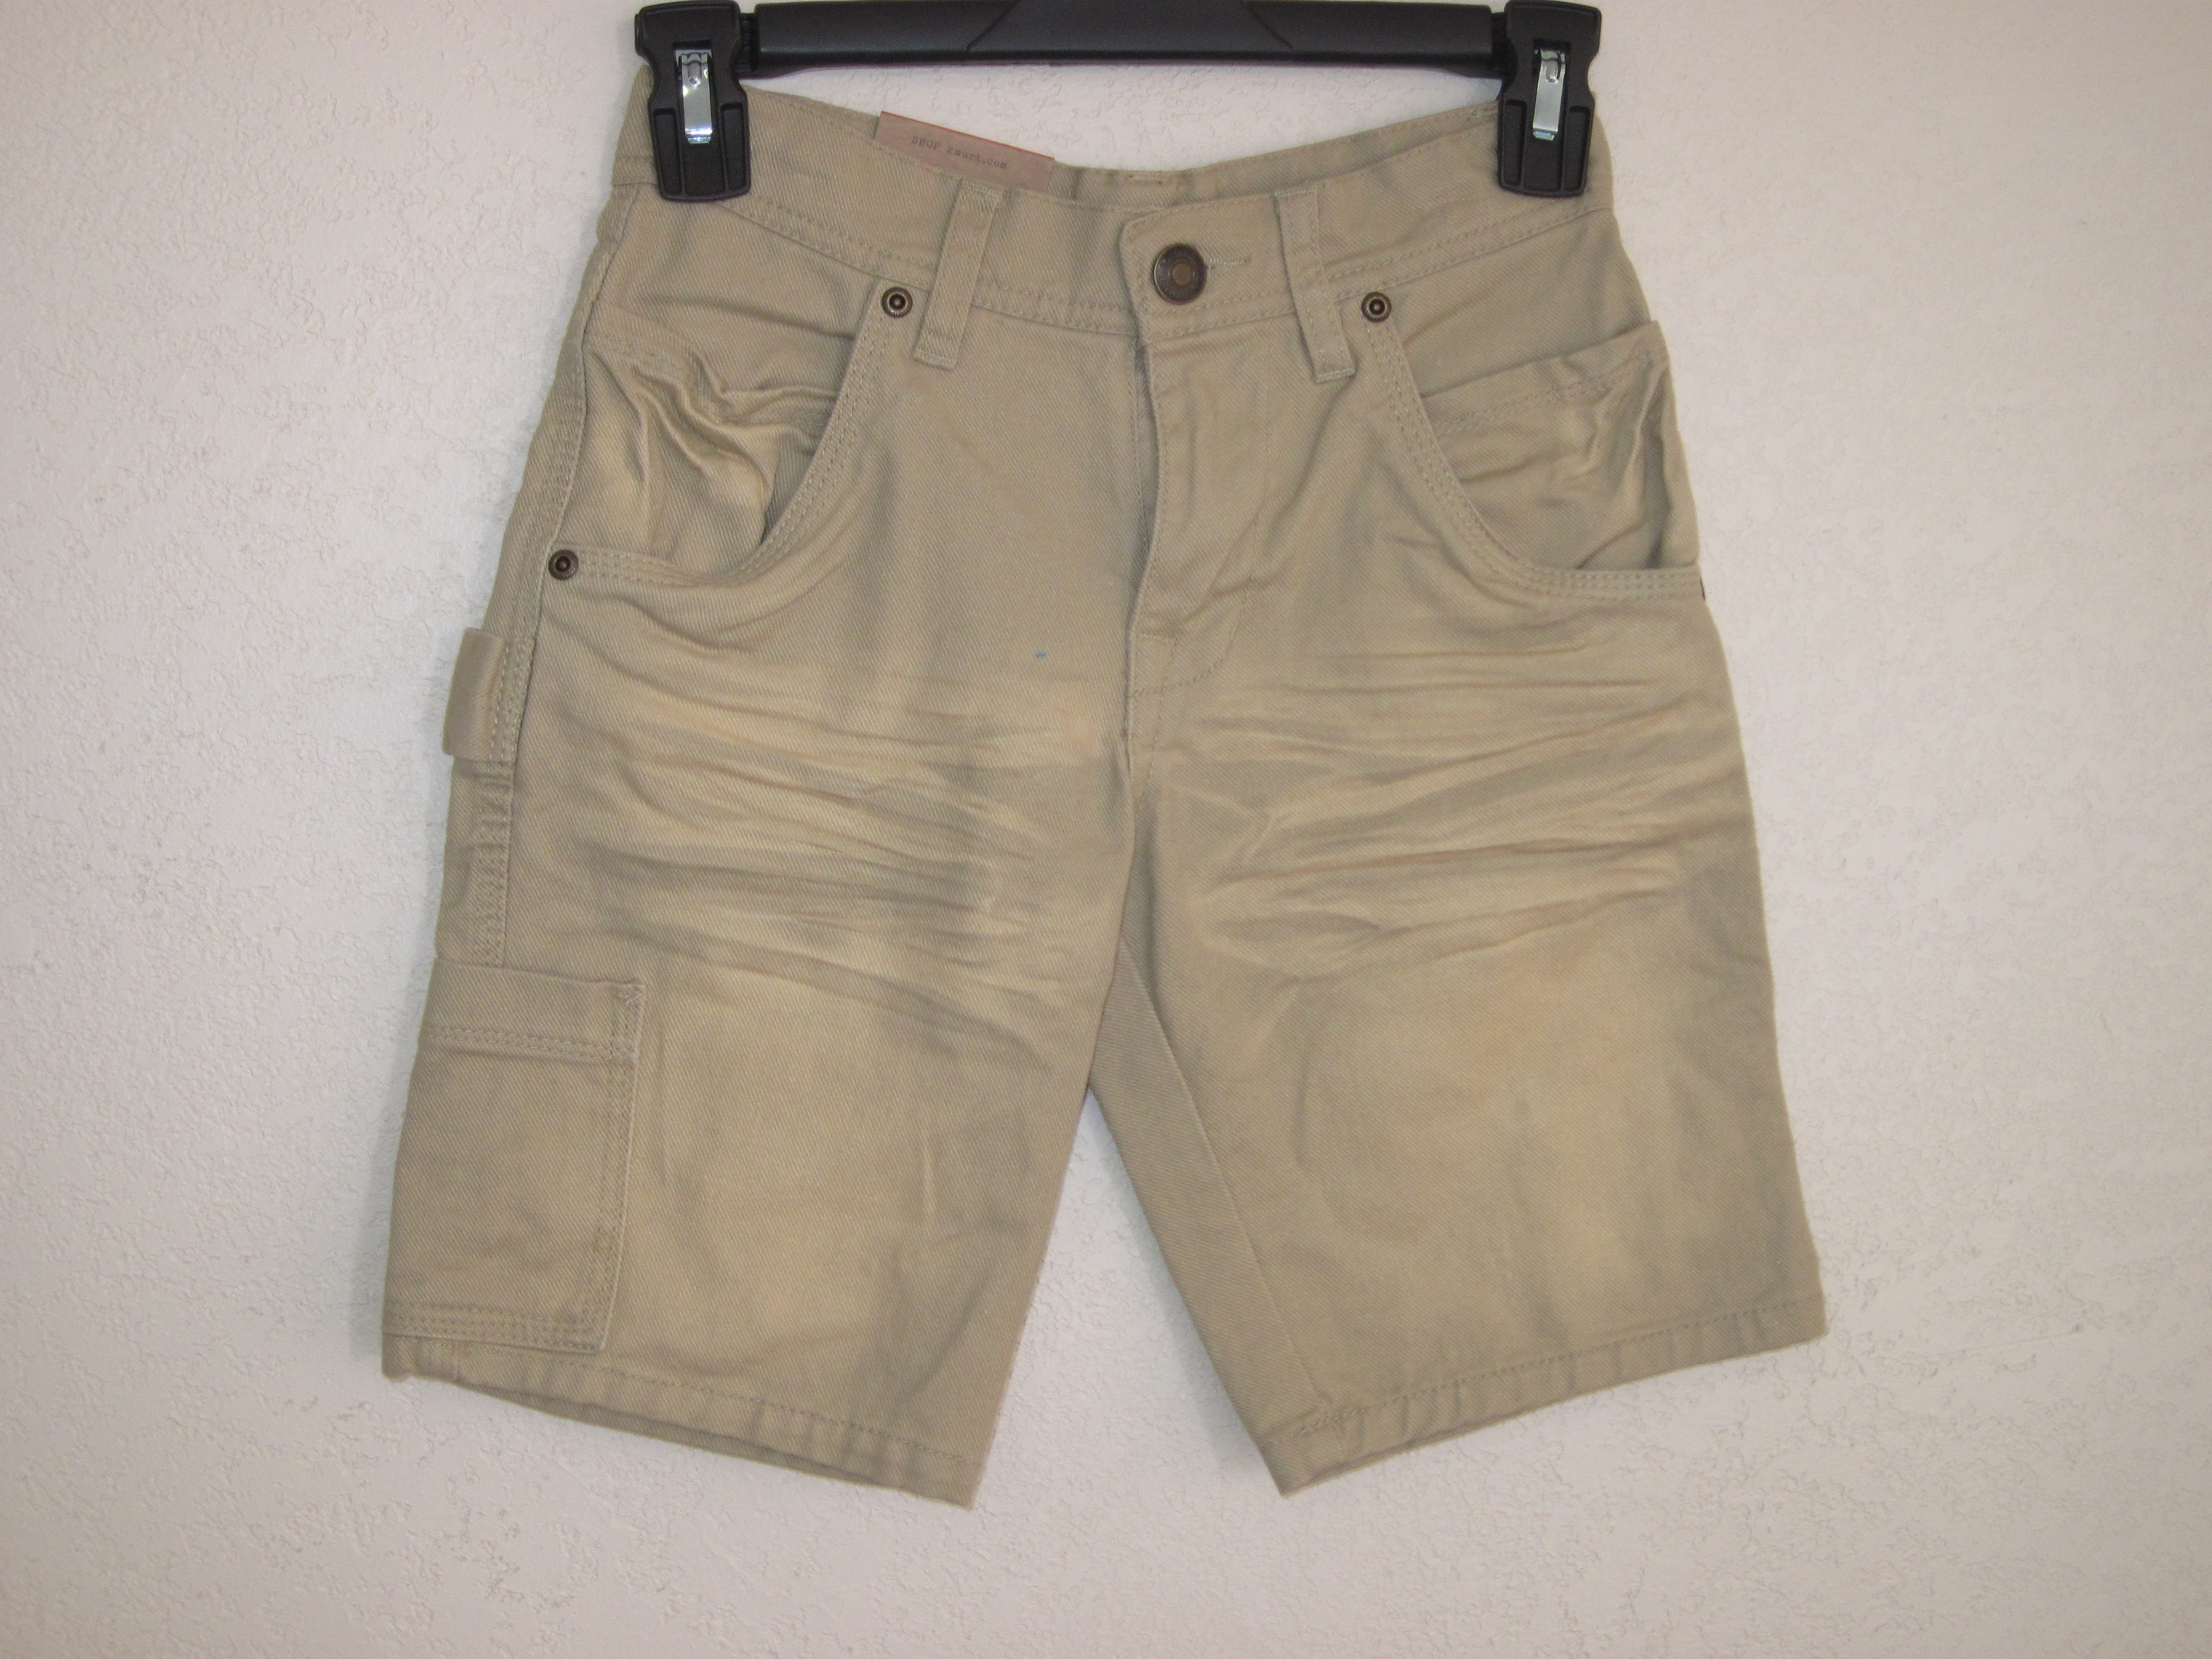 Route 66 Sz 8 Slim Carpenter Jean Shorts (faded light brown)